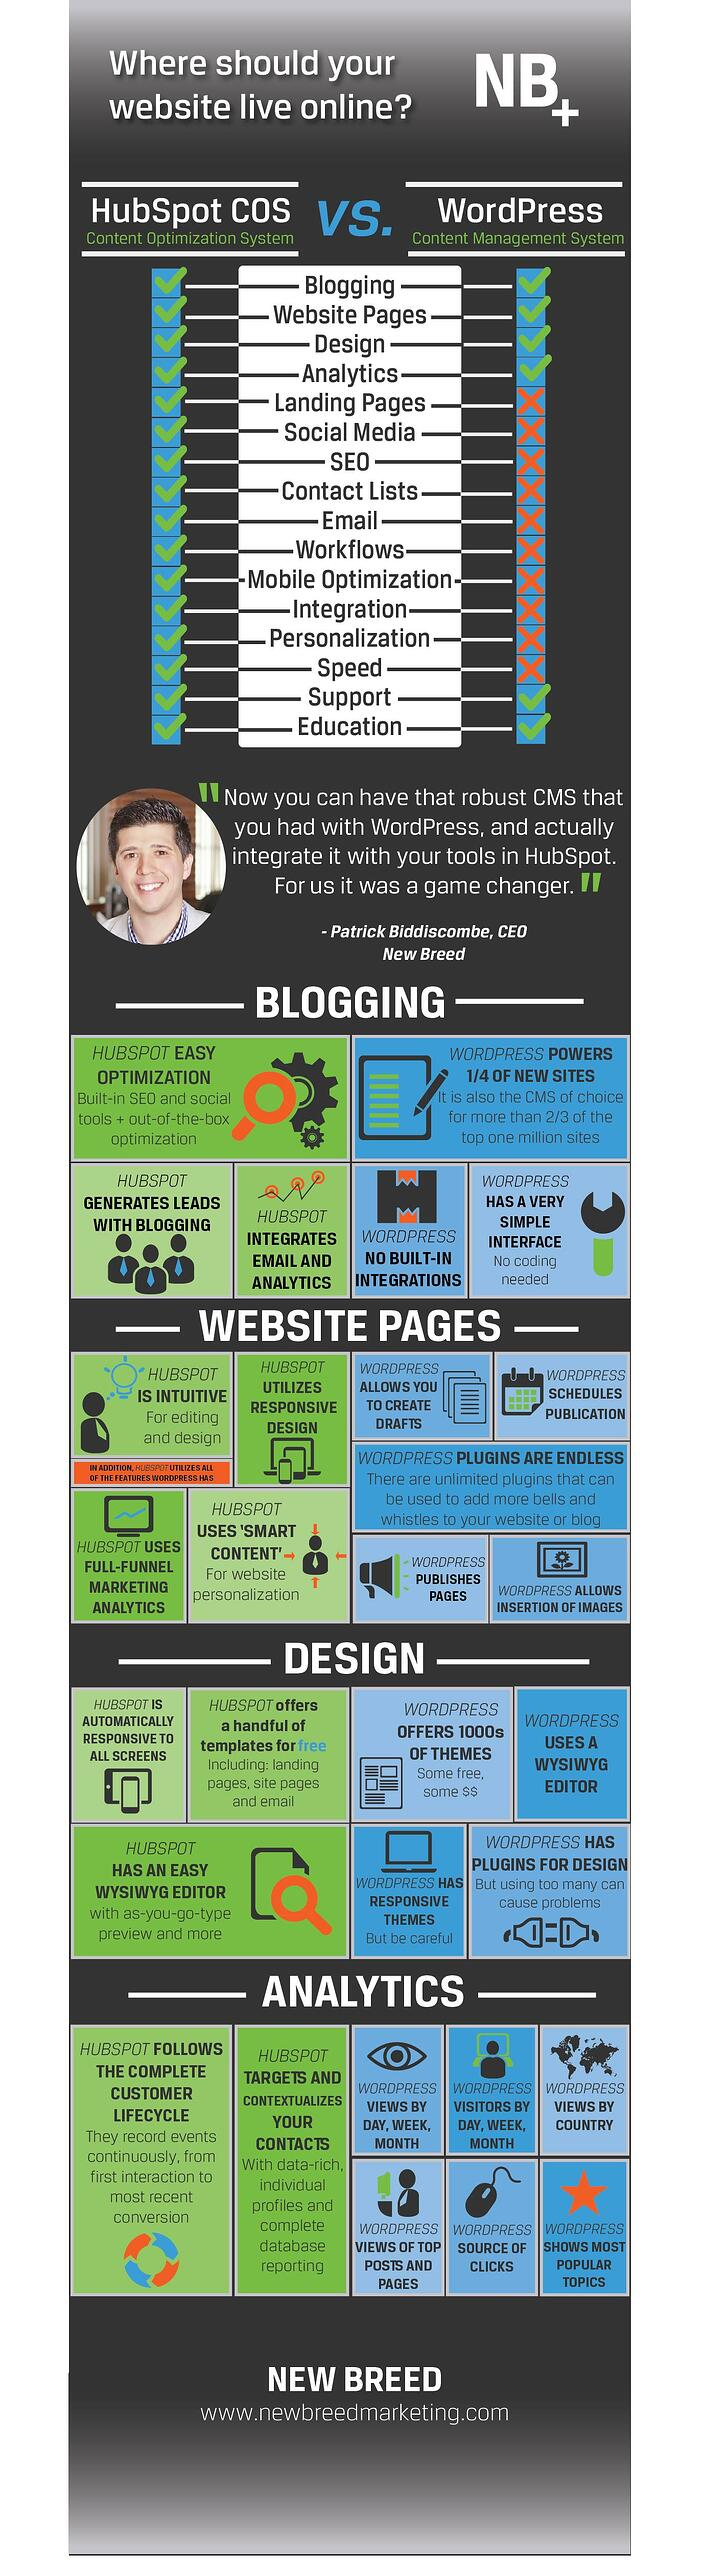 HubSpot_COS_vs_WordPress_INFOGRAPHIC-2